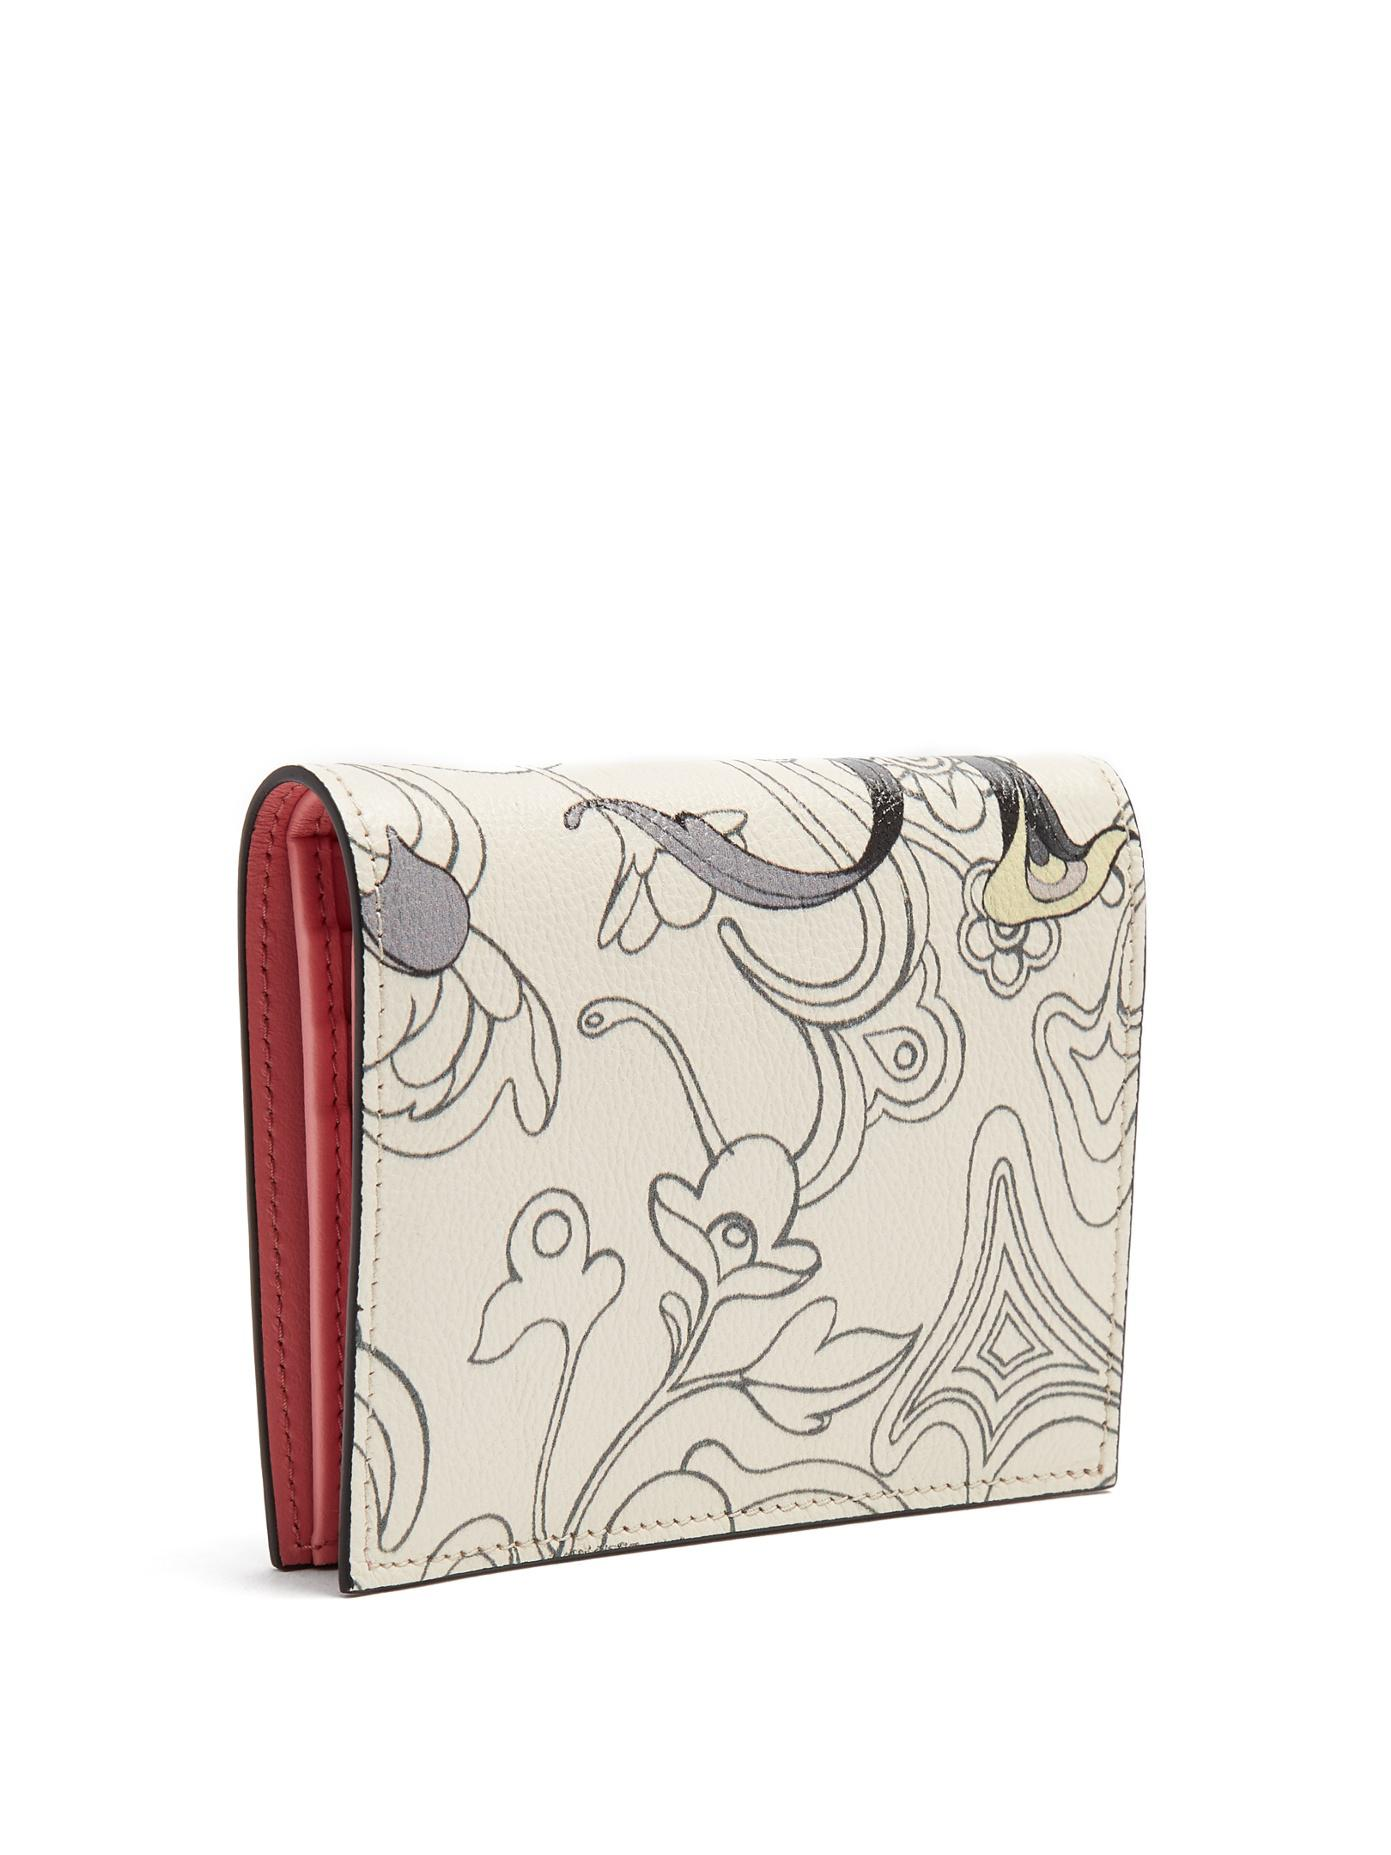 c3500088d3cb99 Prada Rabbit-print Bi-fold Leather Wallet in Pink - Lyst